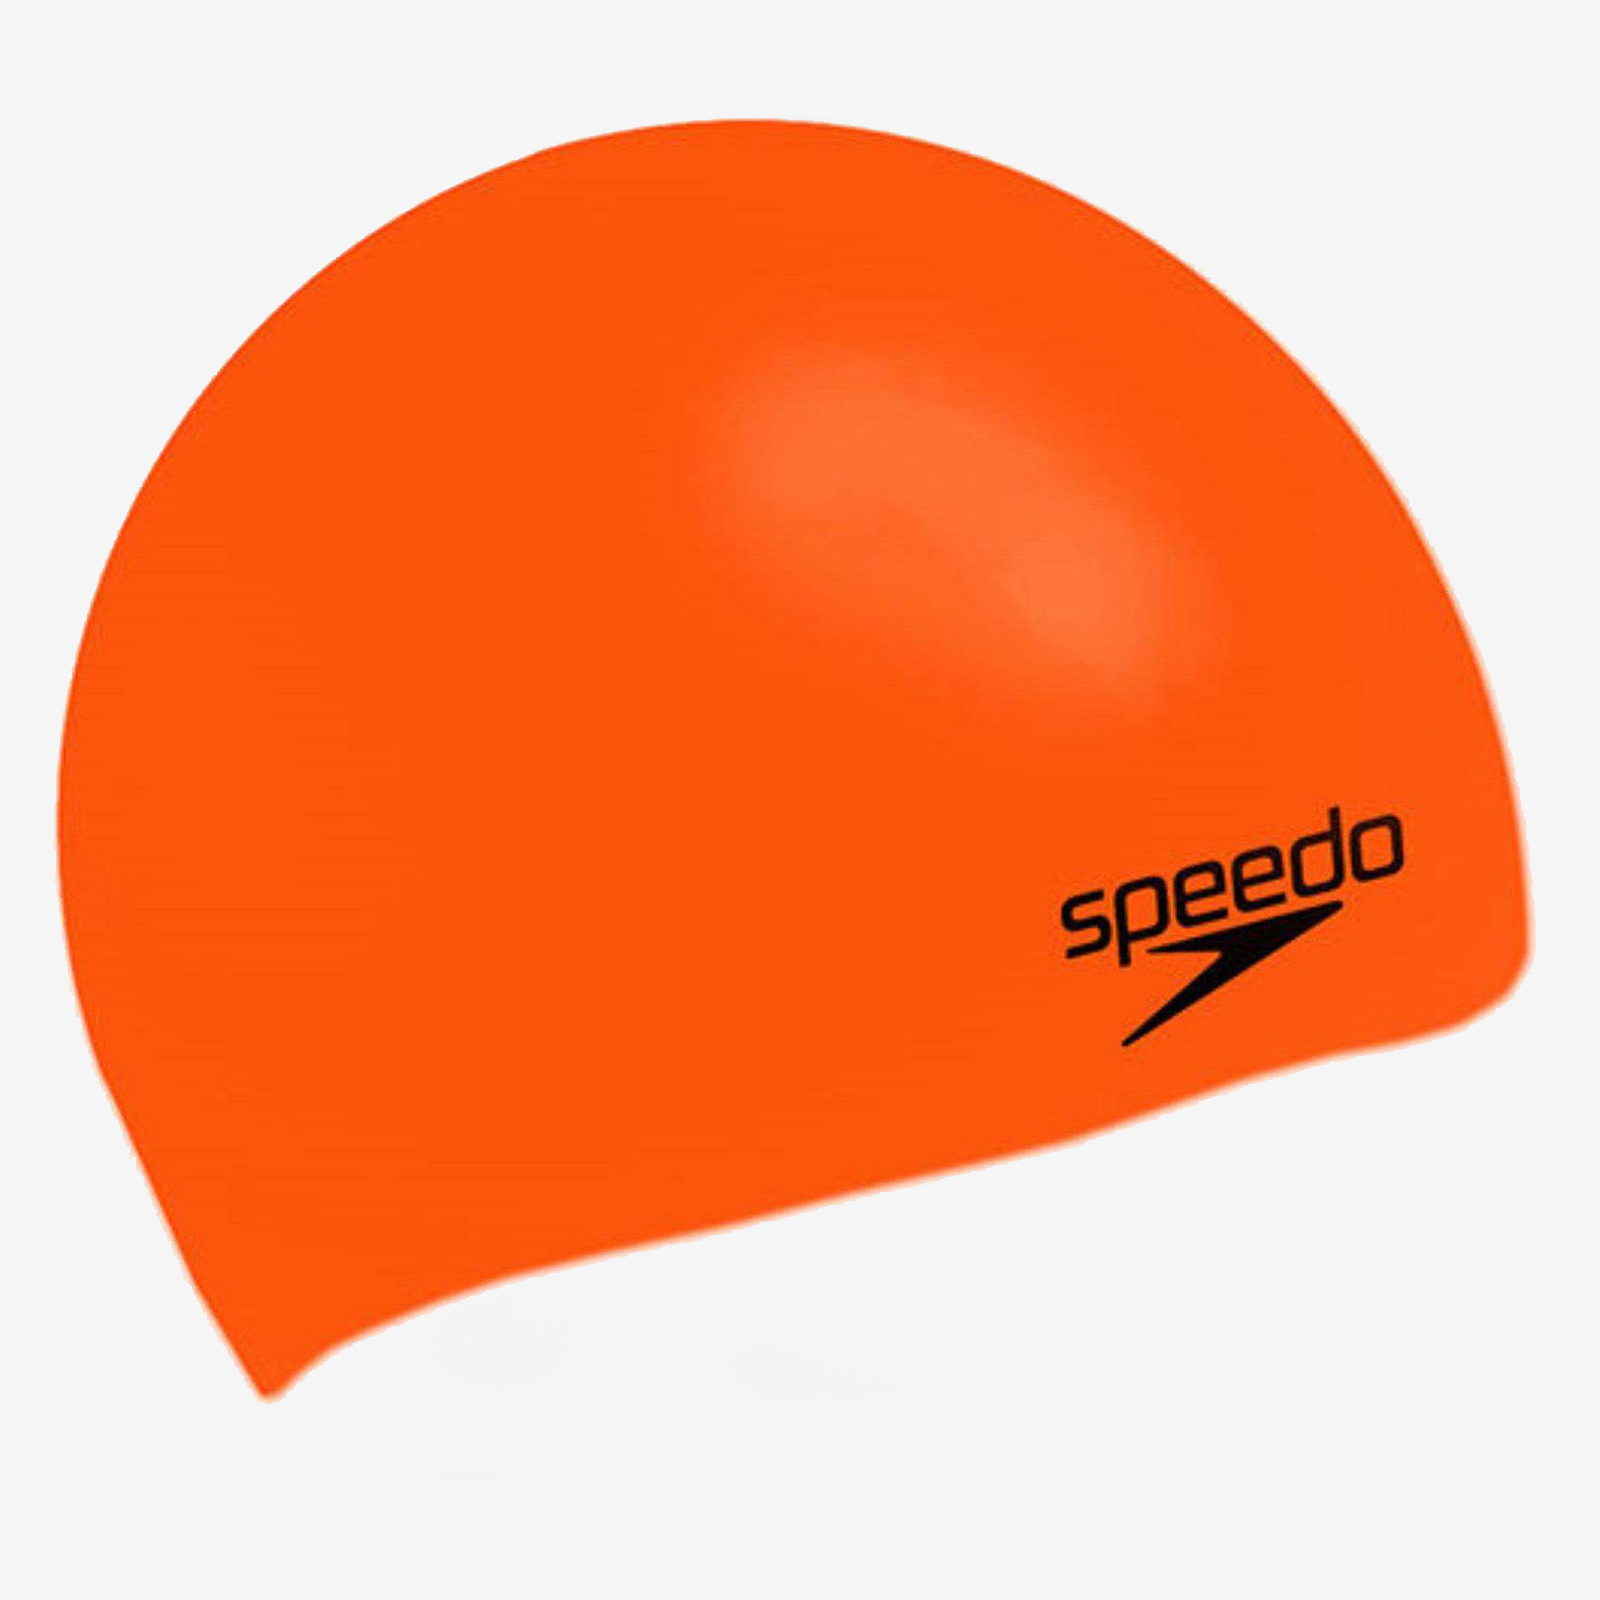 SPYB64-000-speedo-silc-moud-cap-au-orange-8-709841911-637032891682113152.jpg